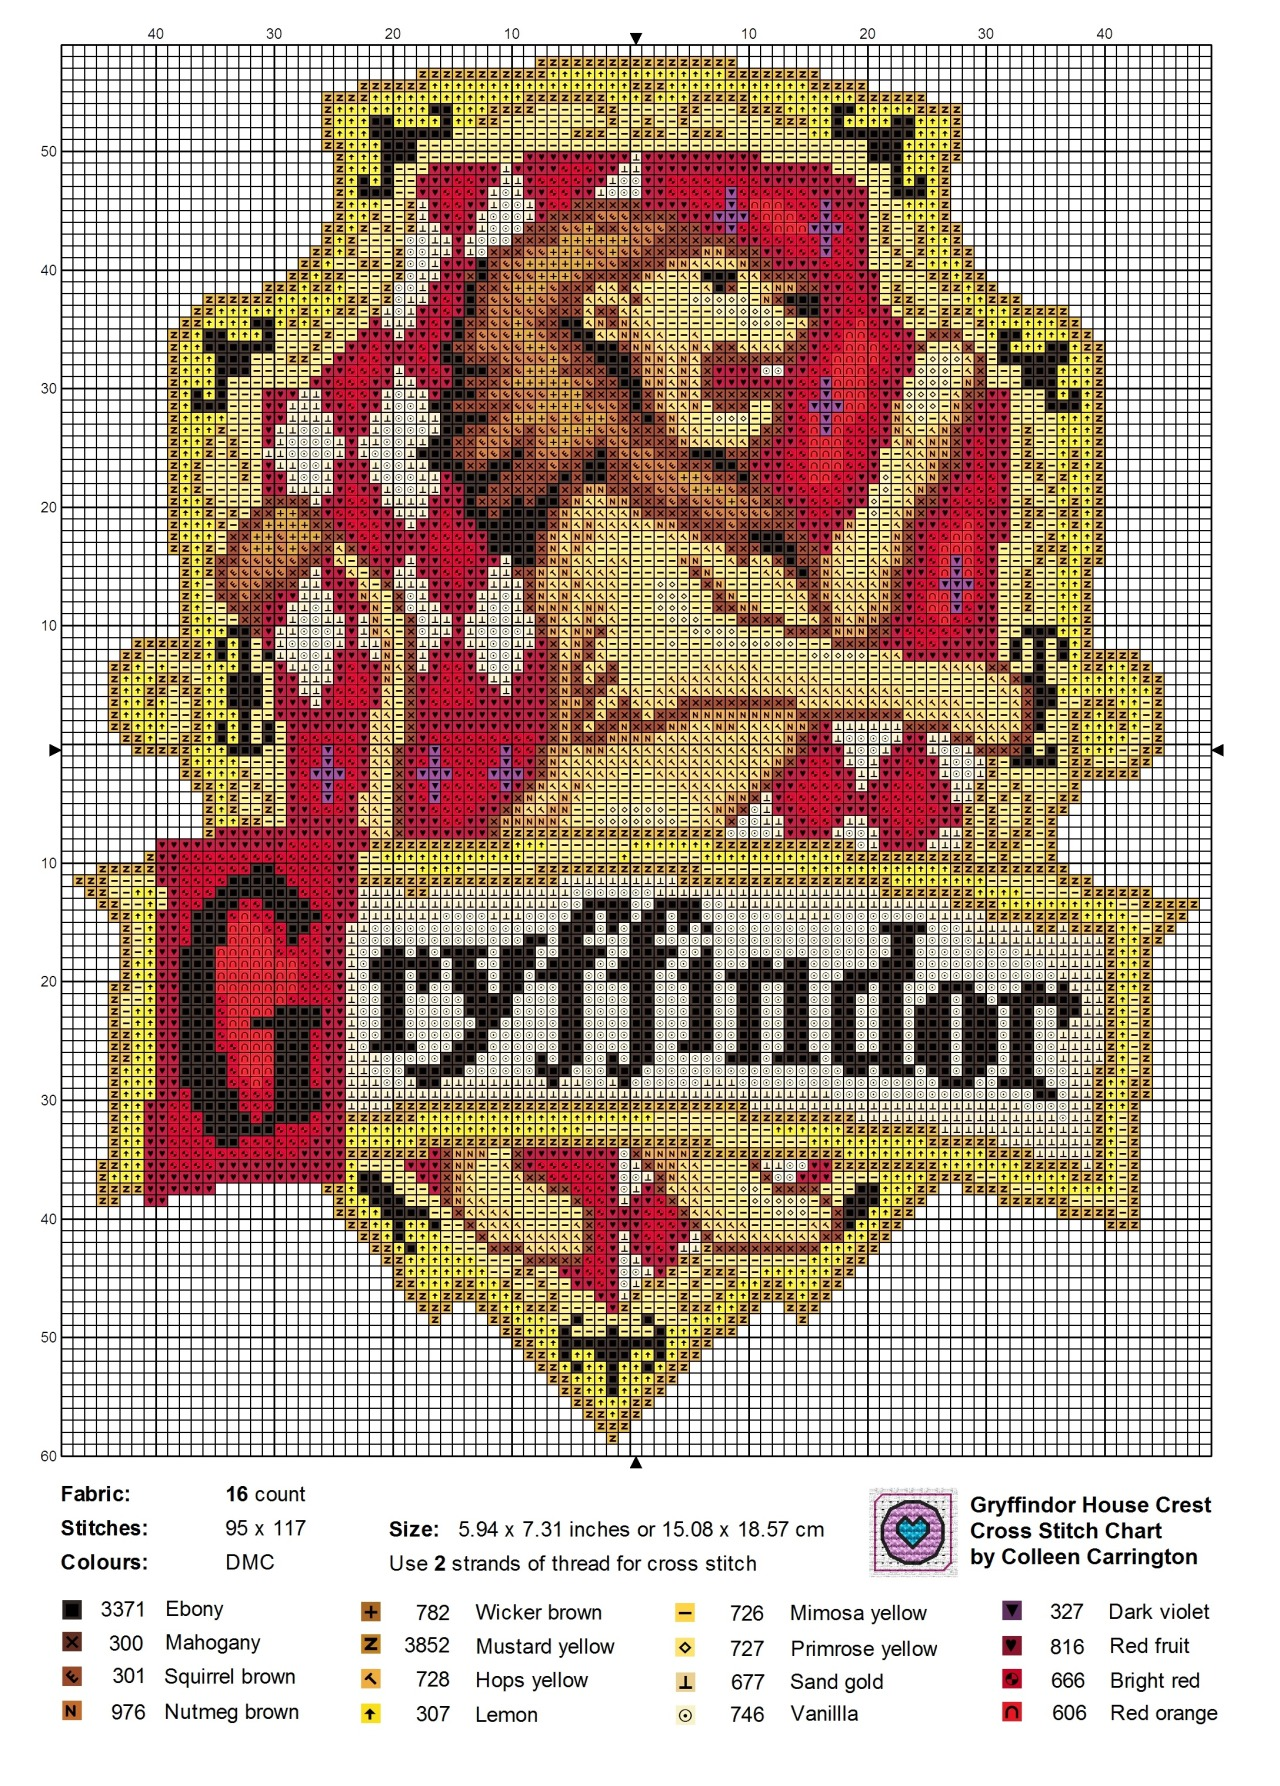 needlepoint stitches stitch diagrams john deere 455 pto wiring diagram the world in  gryffindor house crest cross